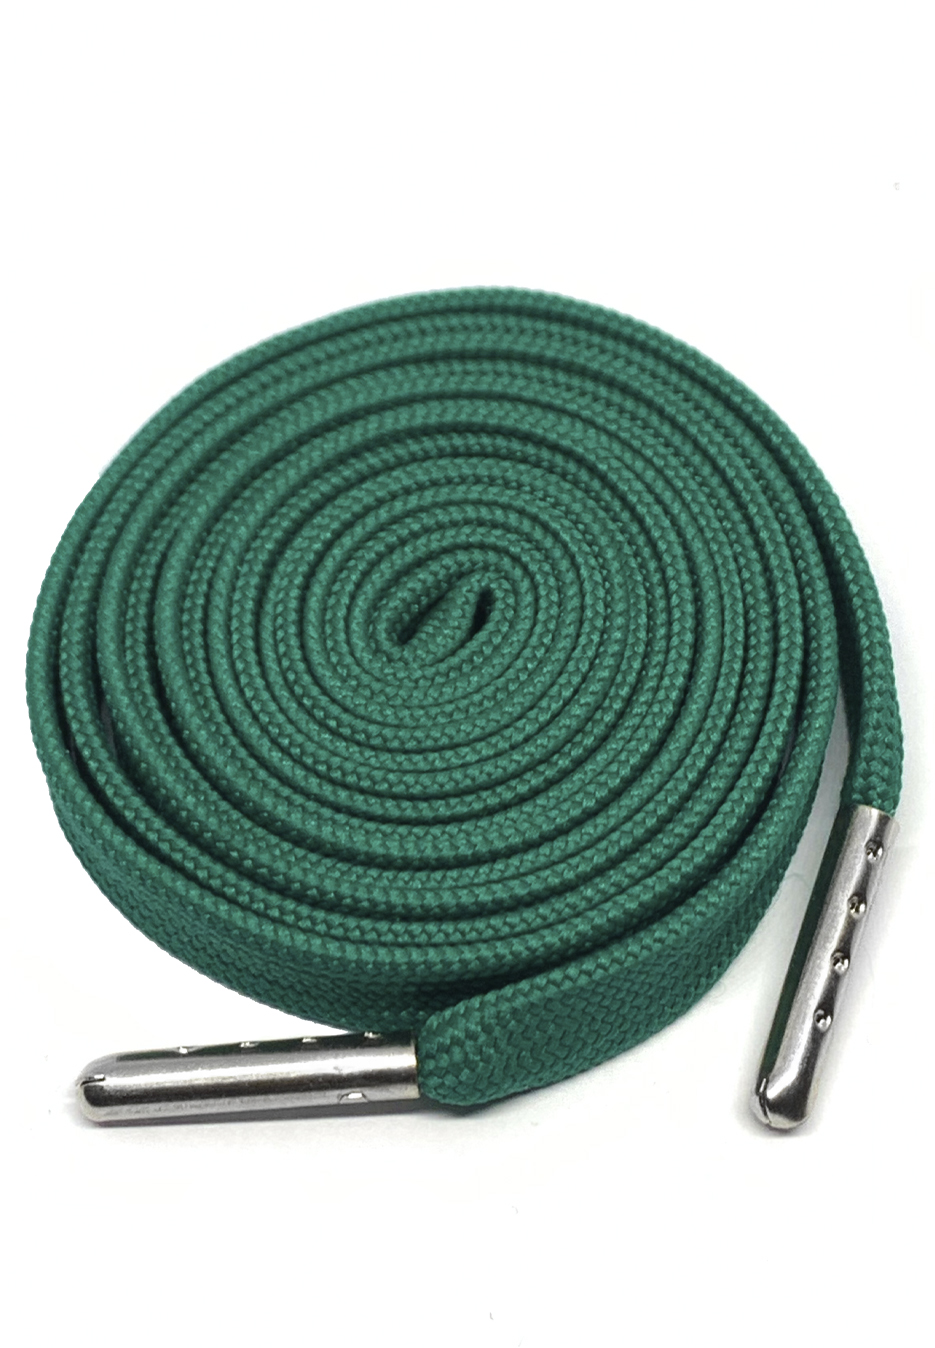 FLAT SHOELACES - EMERALD GREEN / SILVER TIP 1